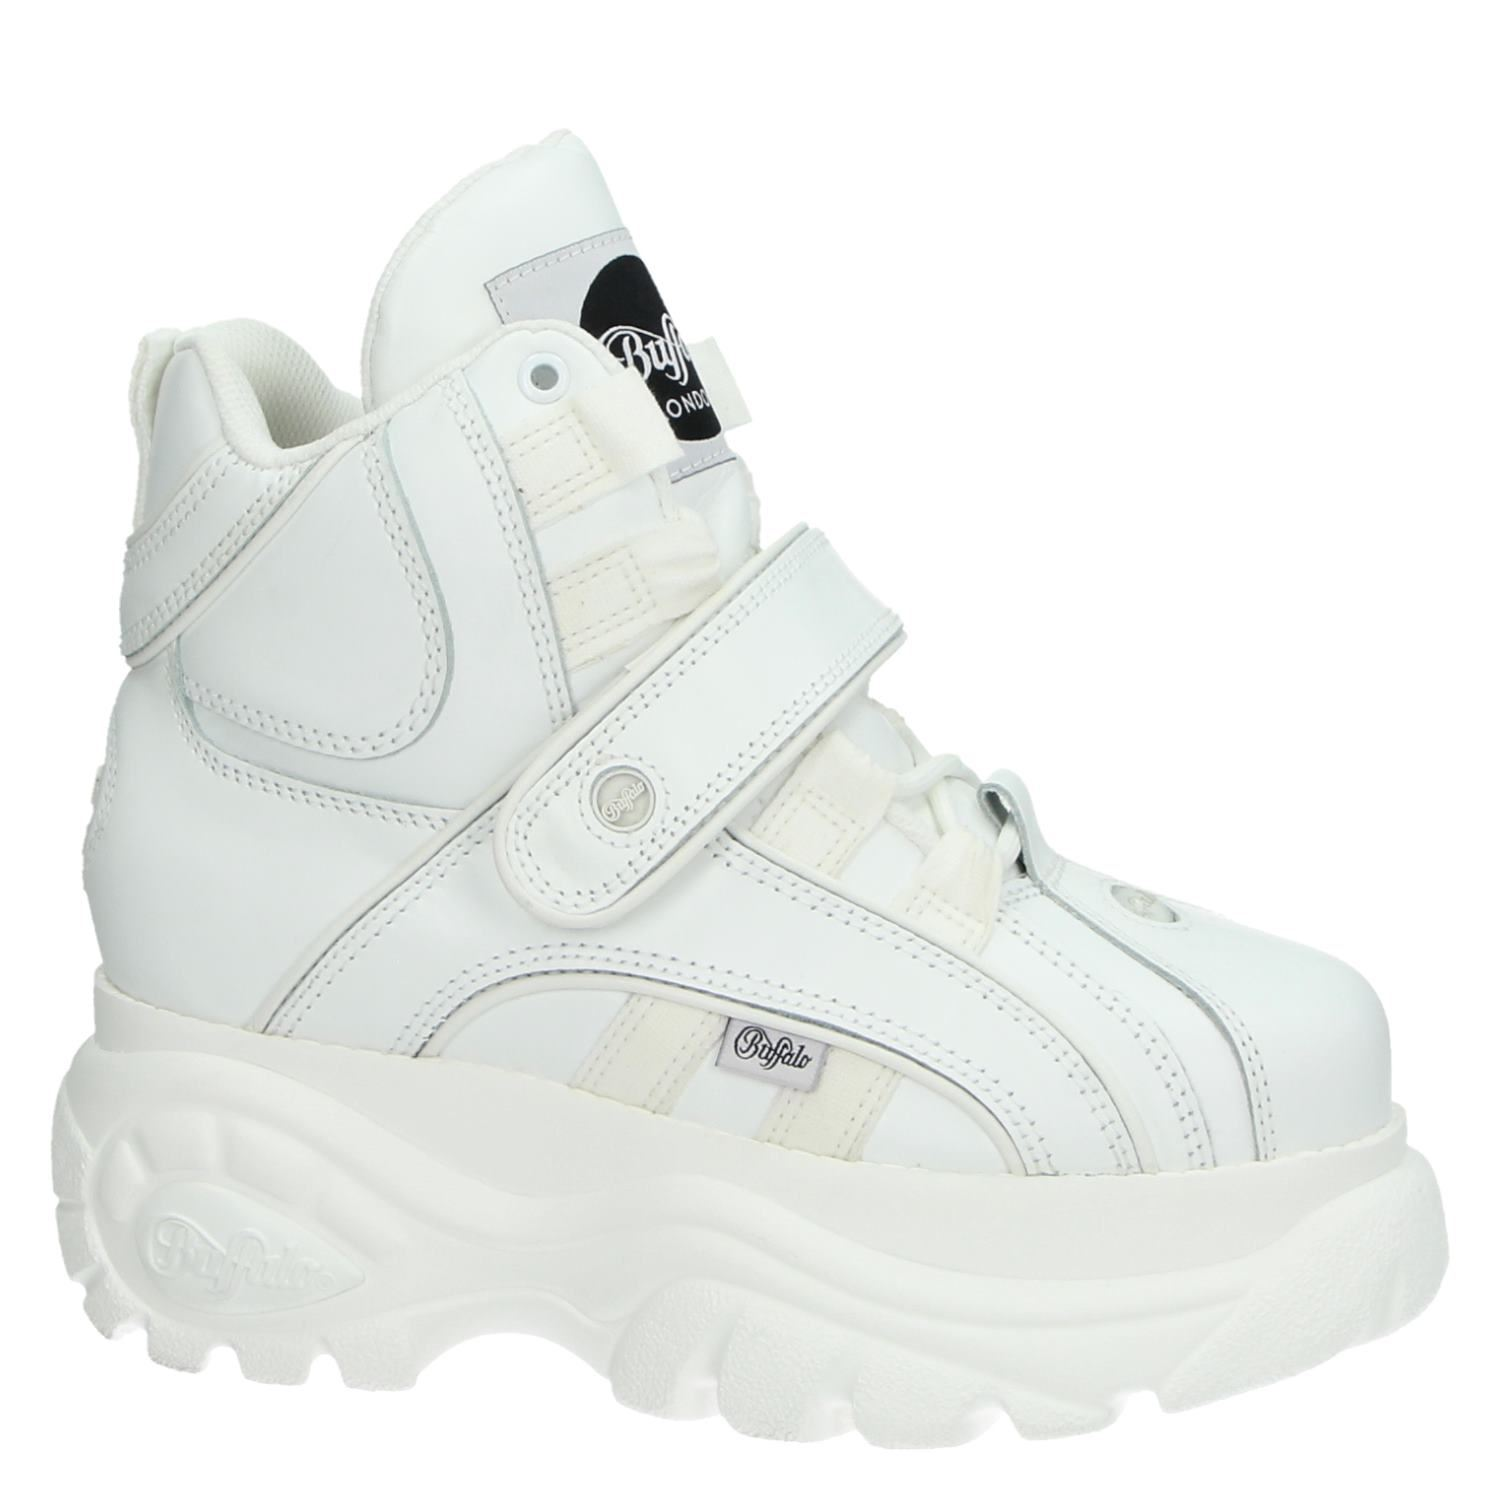 reputable site 29925 7ebe8 Buffalo Classics High dames dad sneakers wit